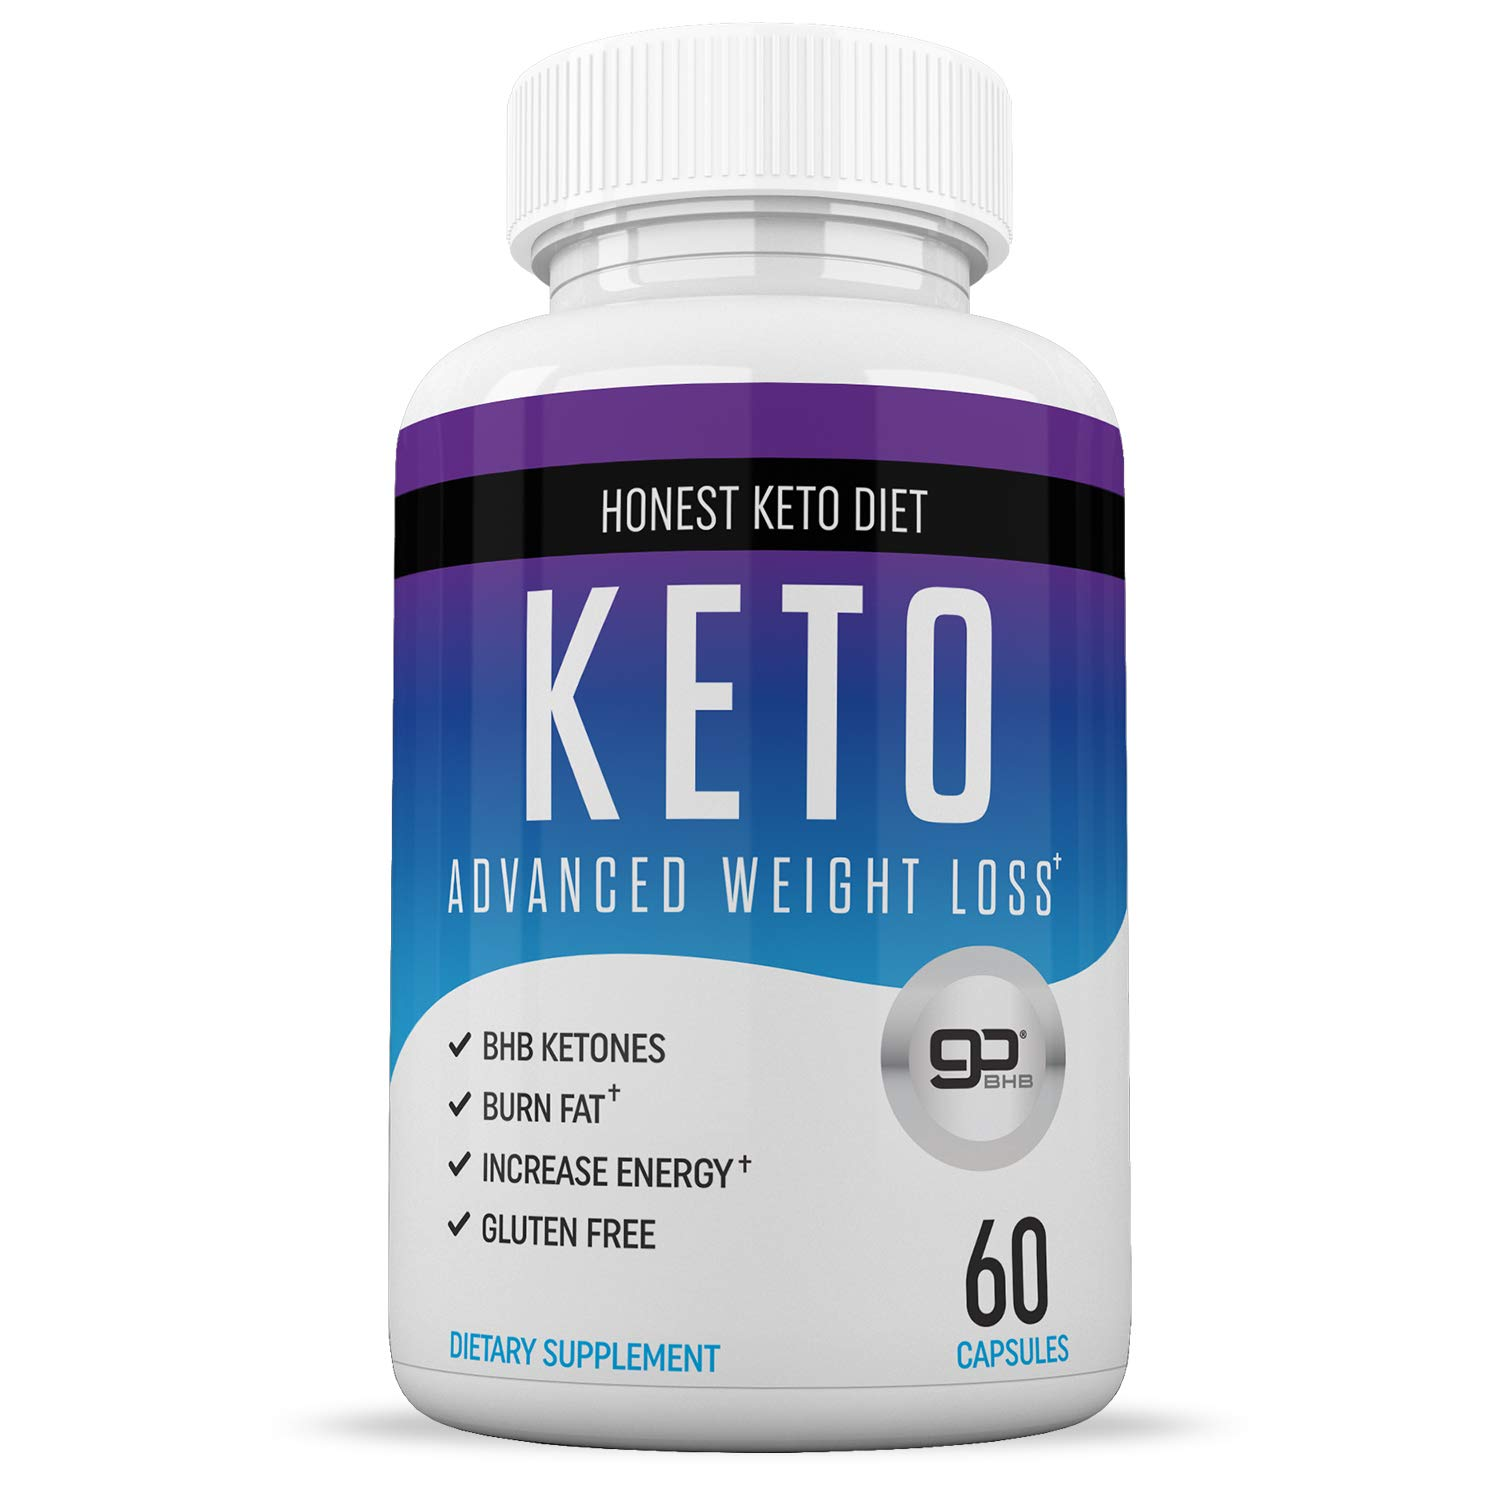 Honest Keto Diet Pills for Weight Loss – Helps Block Carbohydrates – Weight Loss Supplement for Women Men – Burn Fat Instead of Carbs – BHB Salts – 60 Capsules